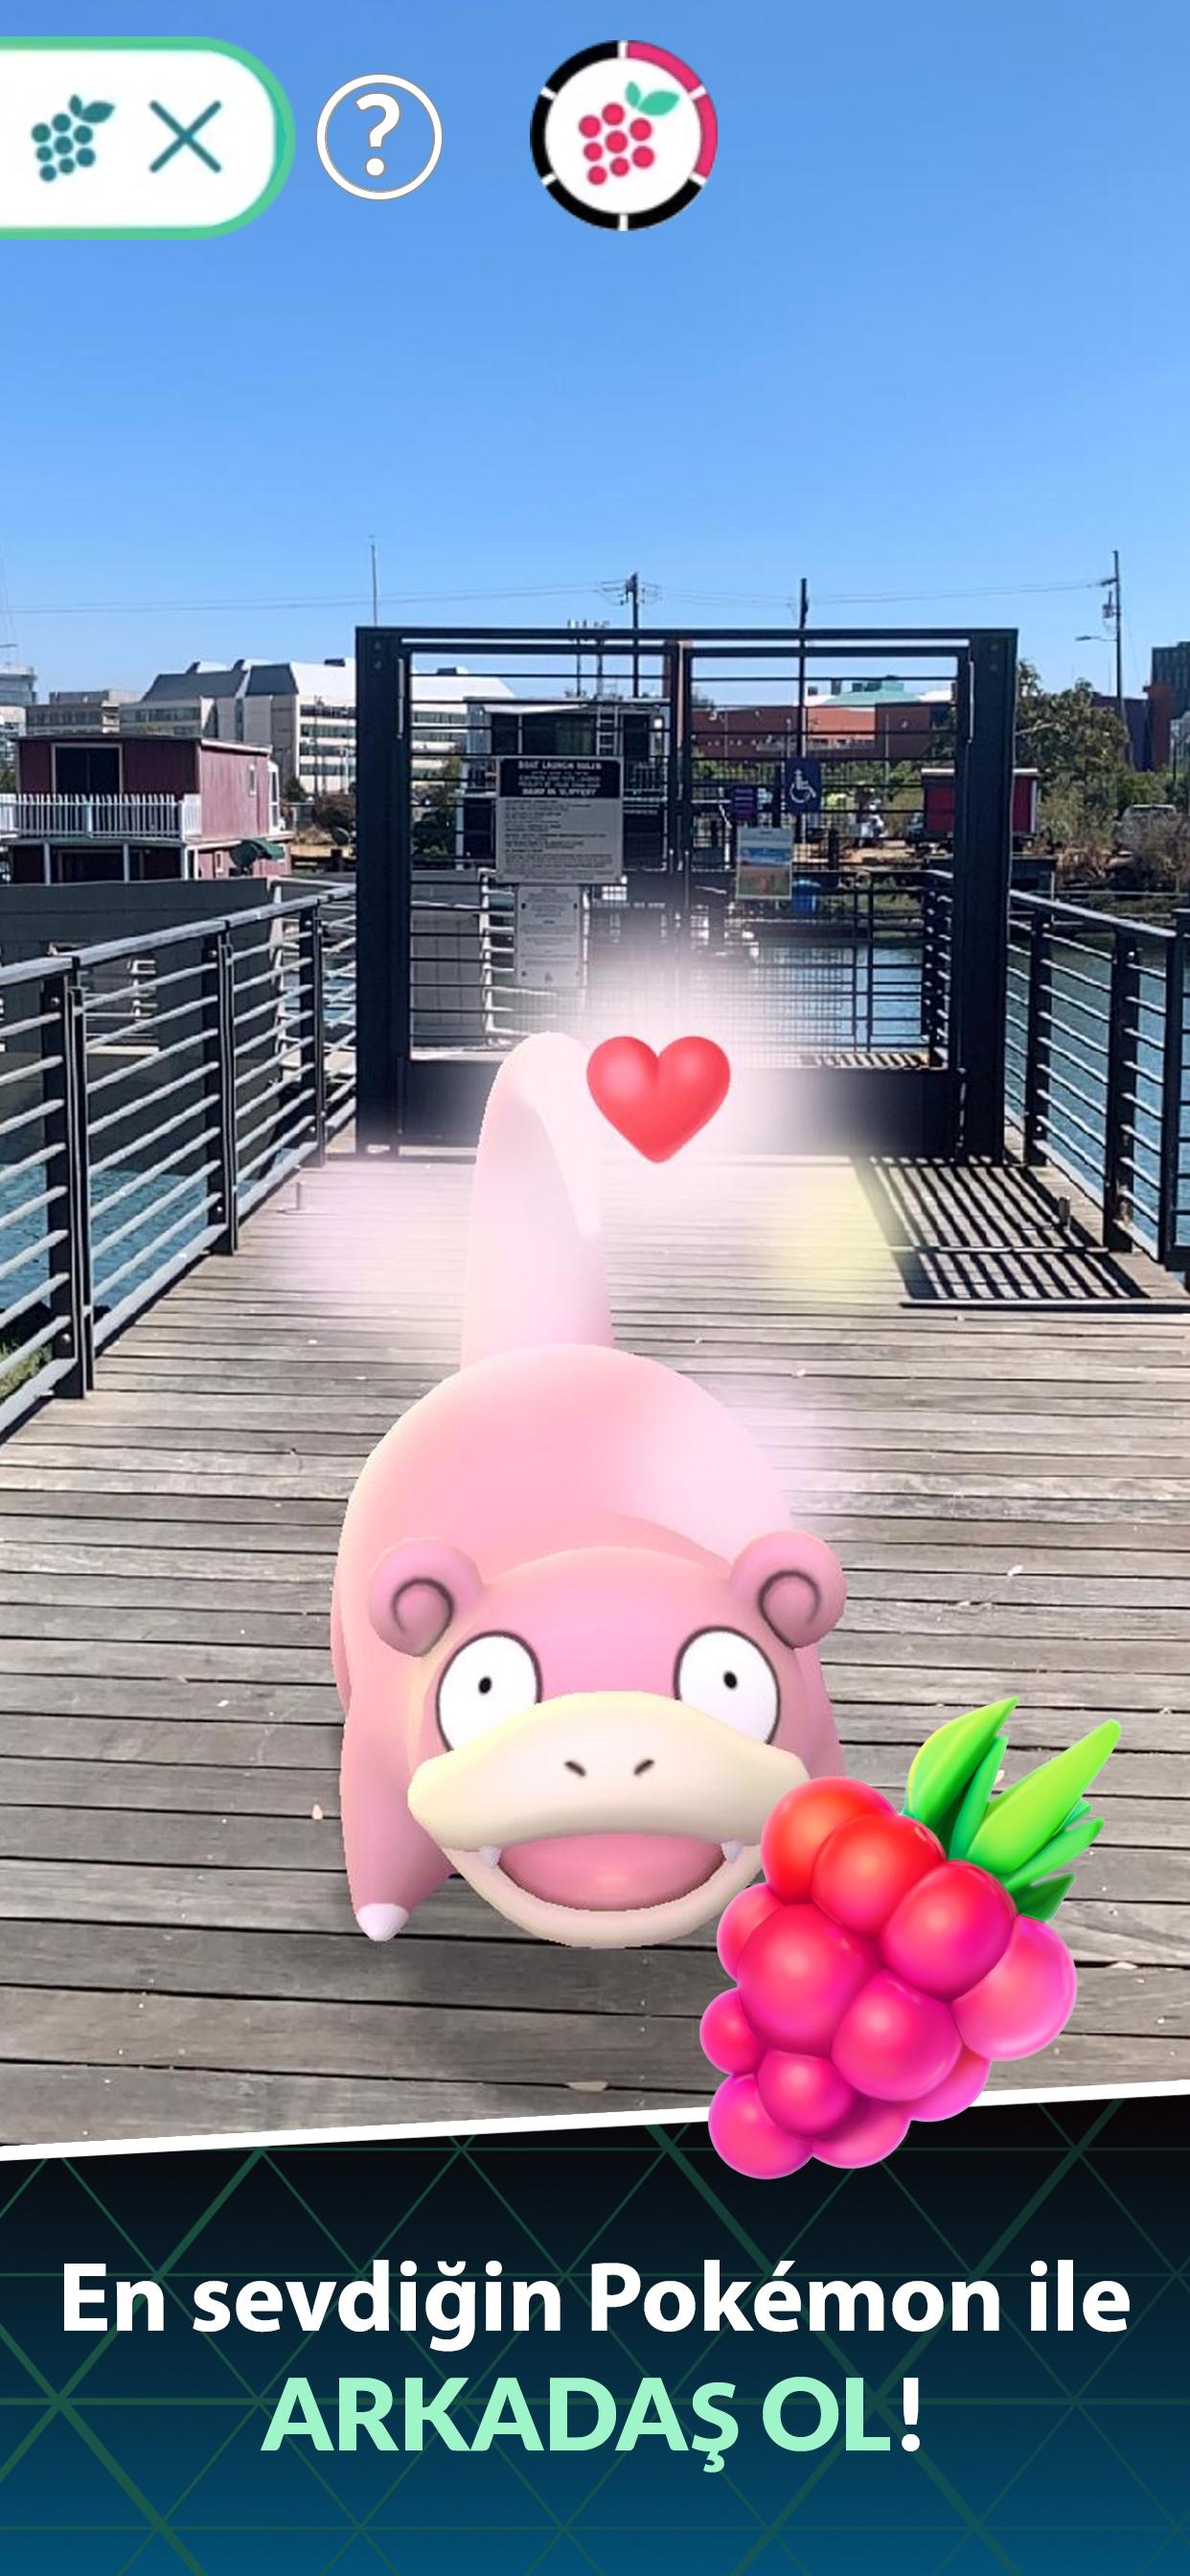 Pokémon GO APK 0.213.2 Download, the best real world adventure game for  Android